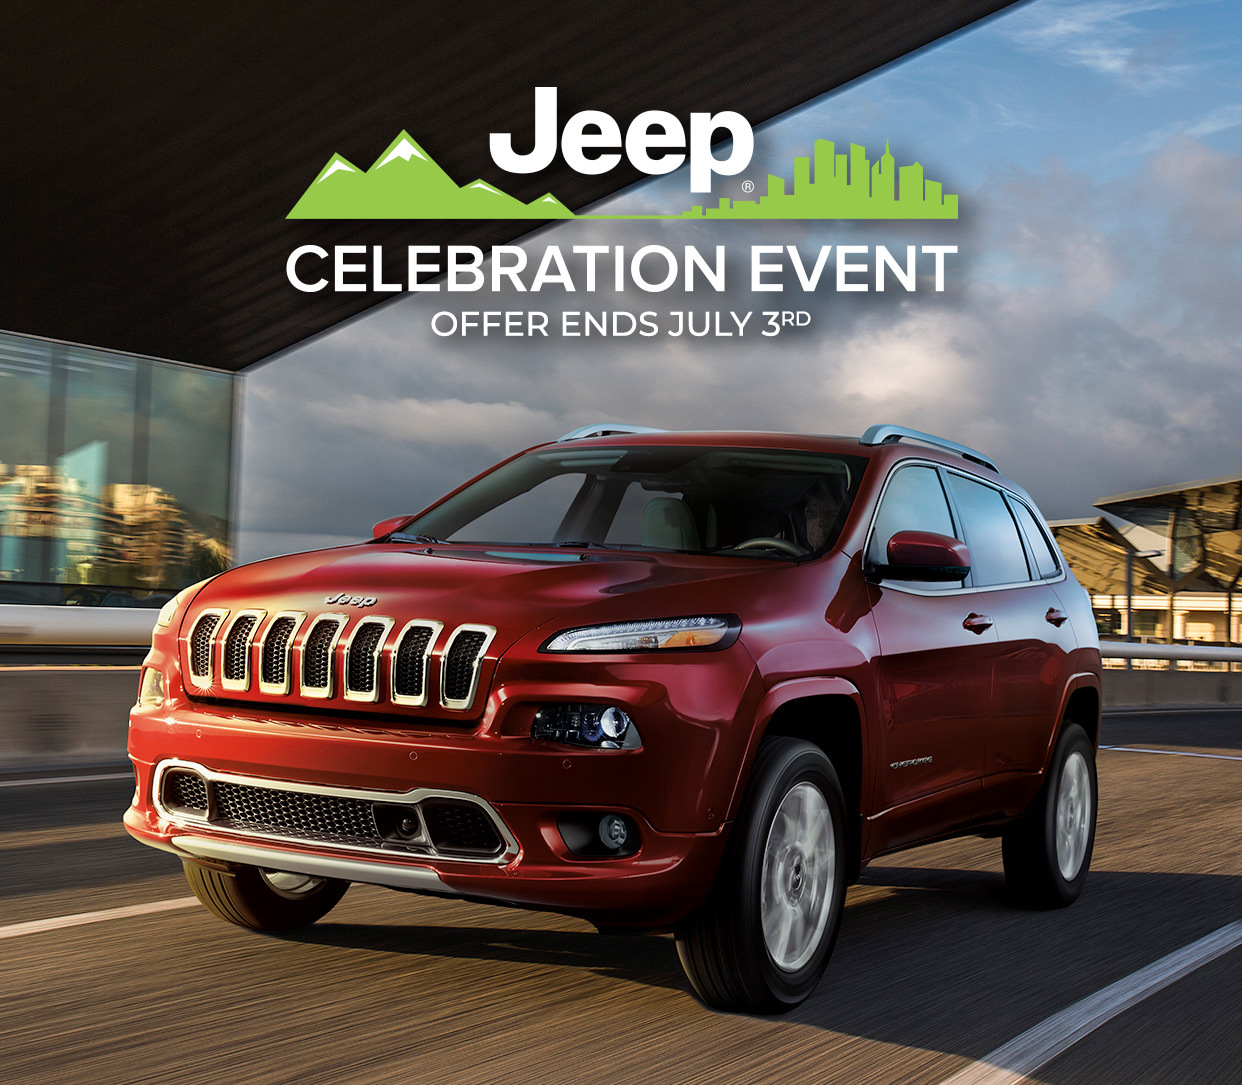 summit live grand lease revealed photos cherokee jeep h news